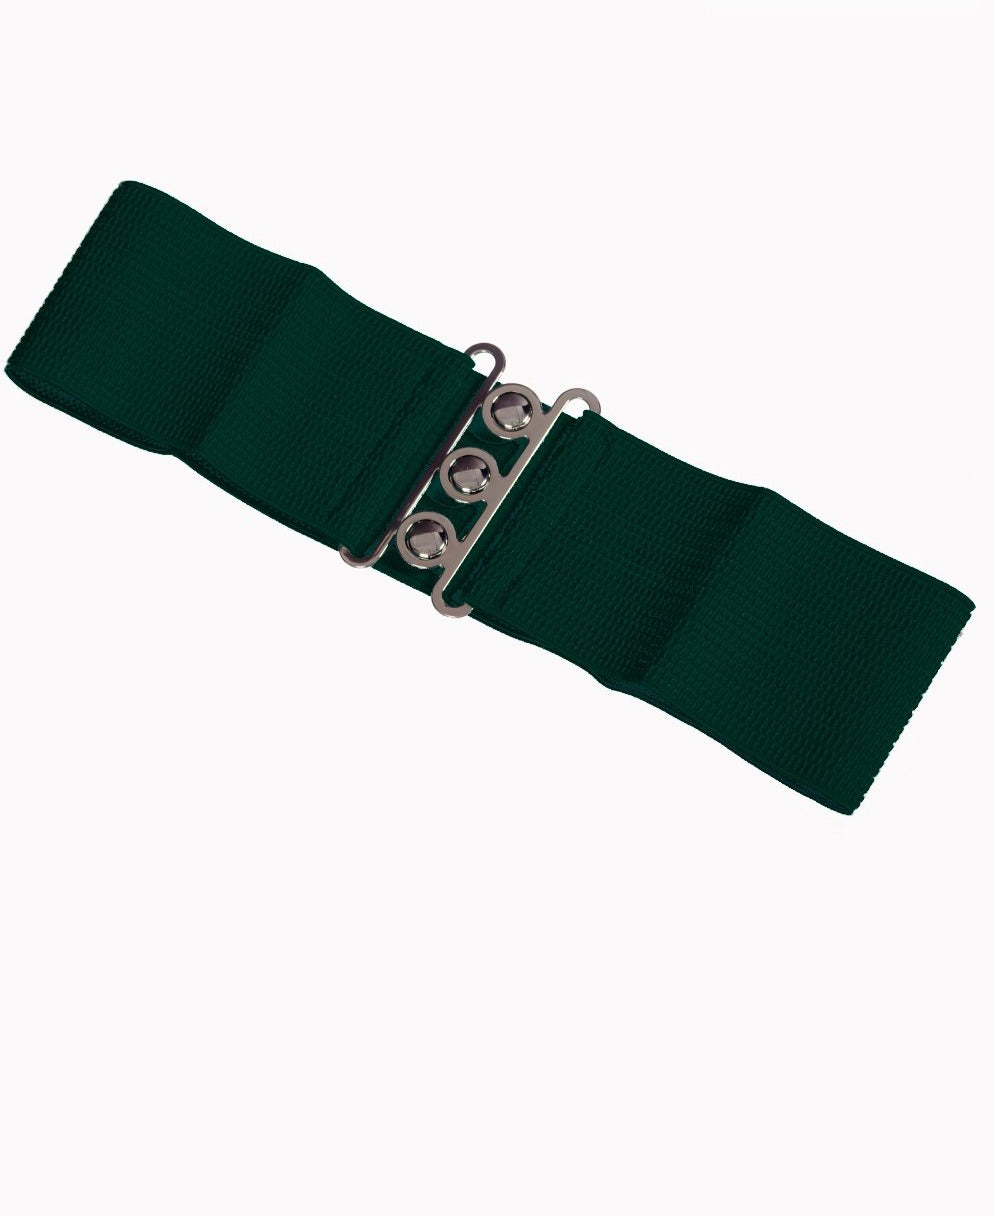 Retro Elasticated 1950's Waspie Belt In Forest Green